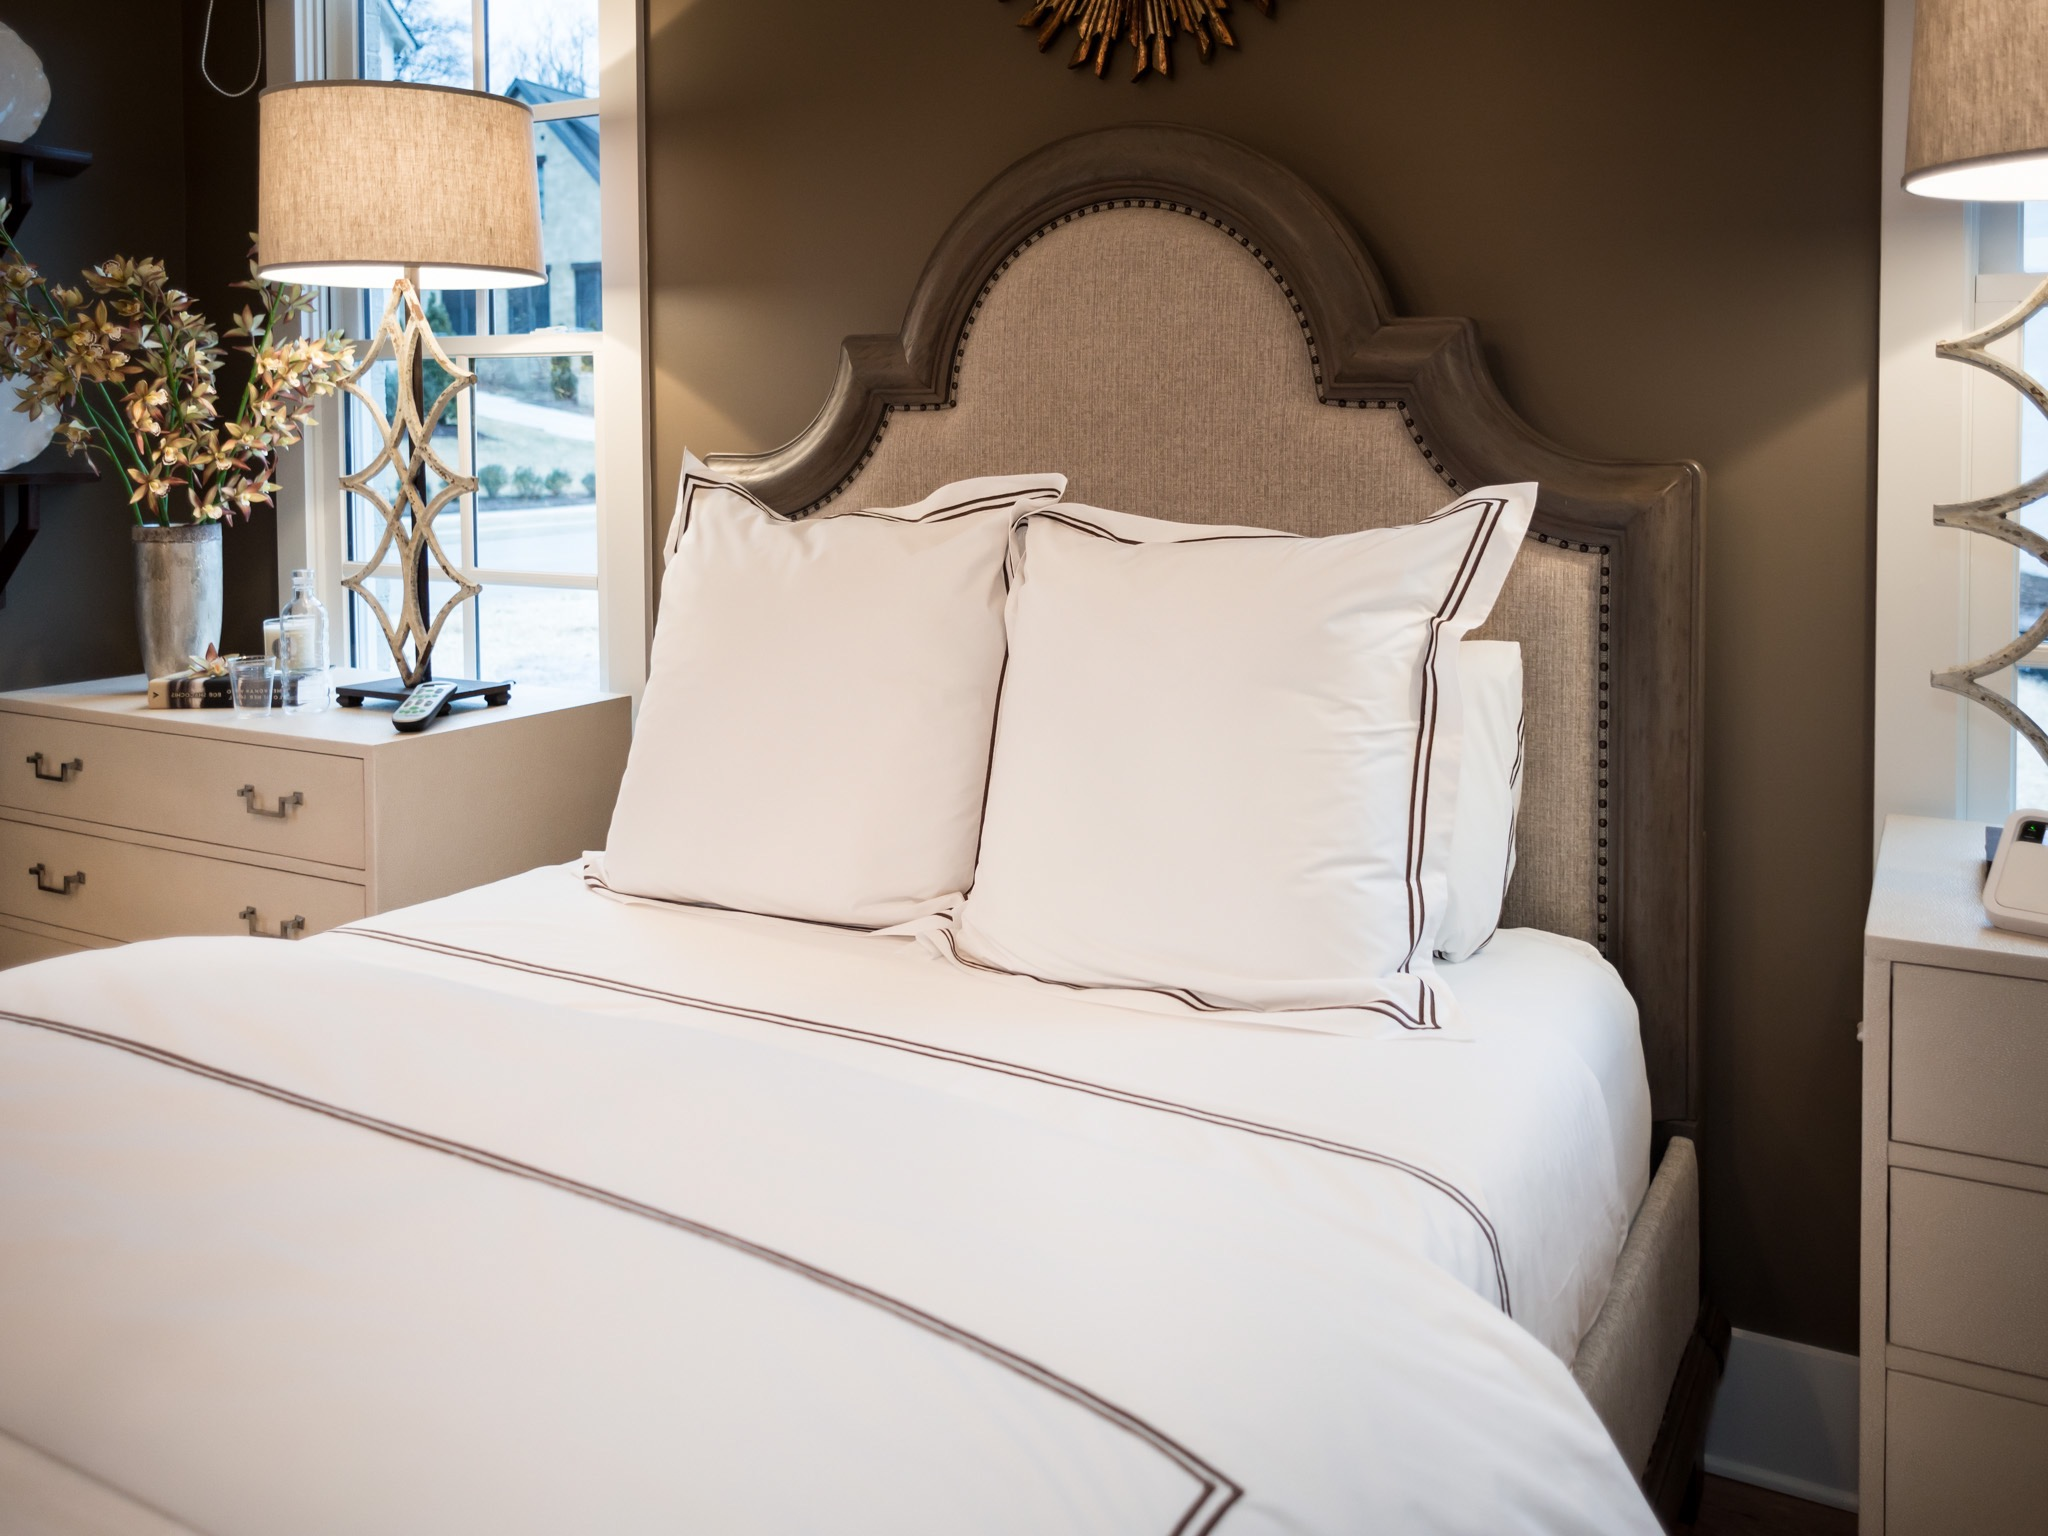 Modern Master Bedroom With Italian Satin Stitch Bedding (View 10 of 12)